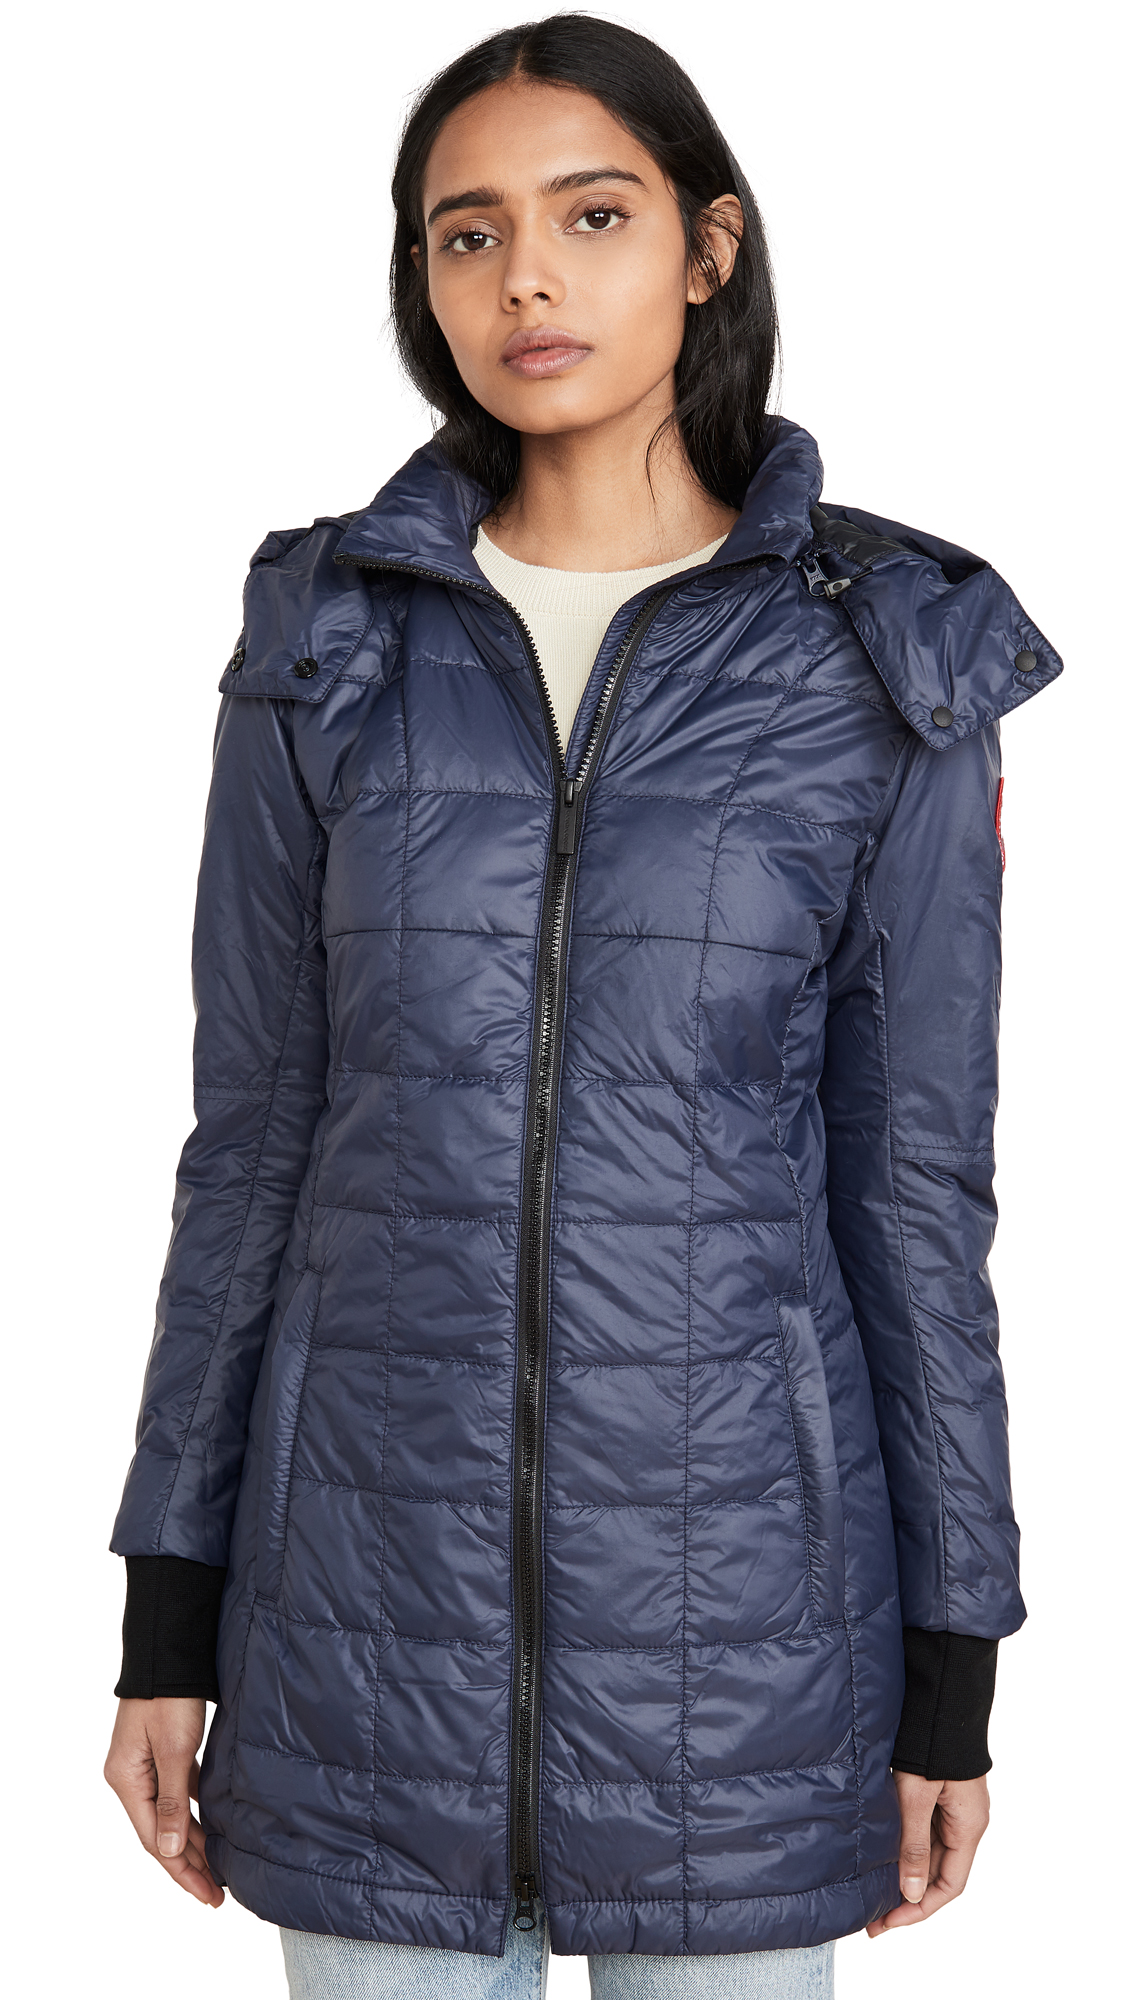 Buy Canada Goose Ellison Jacket online beautiful Canada Goose Jackets, Coats, Down Jackets